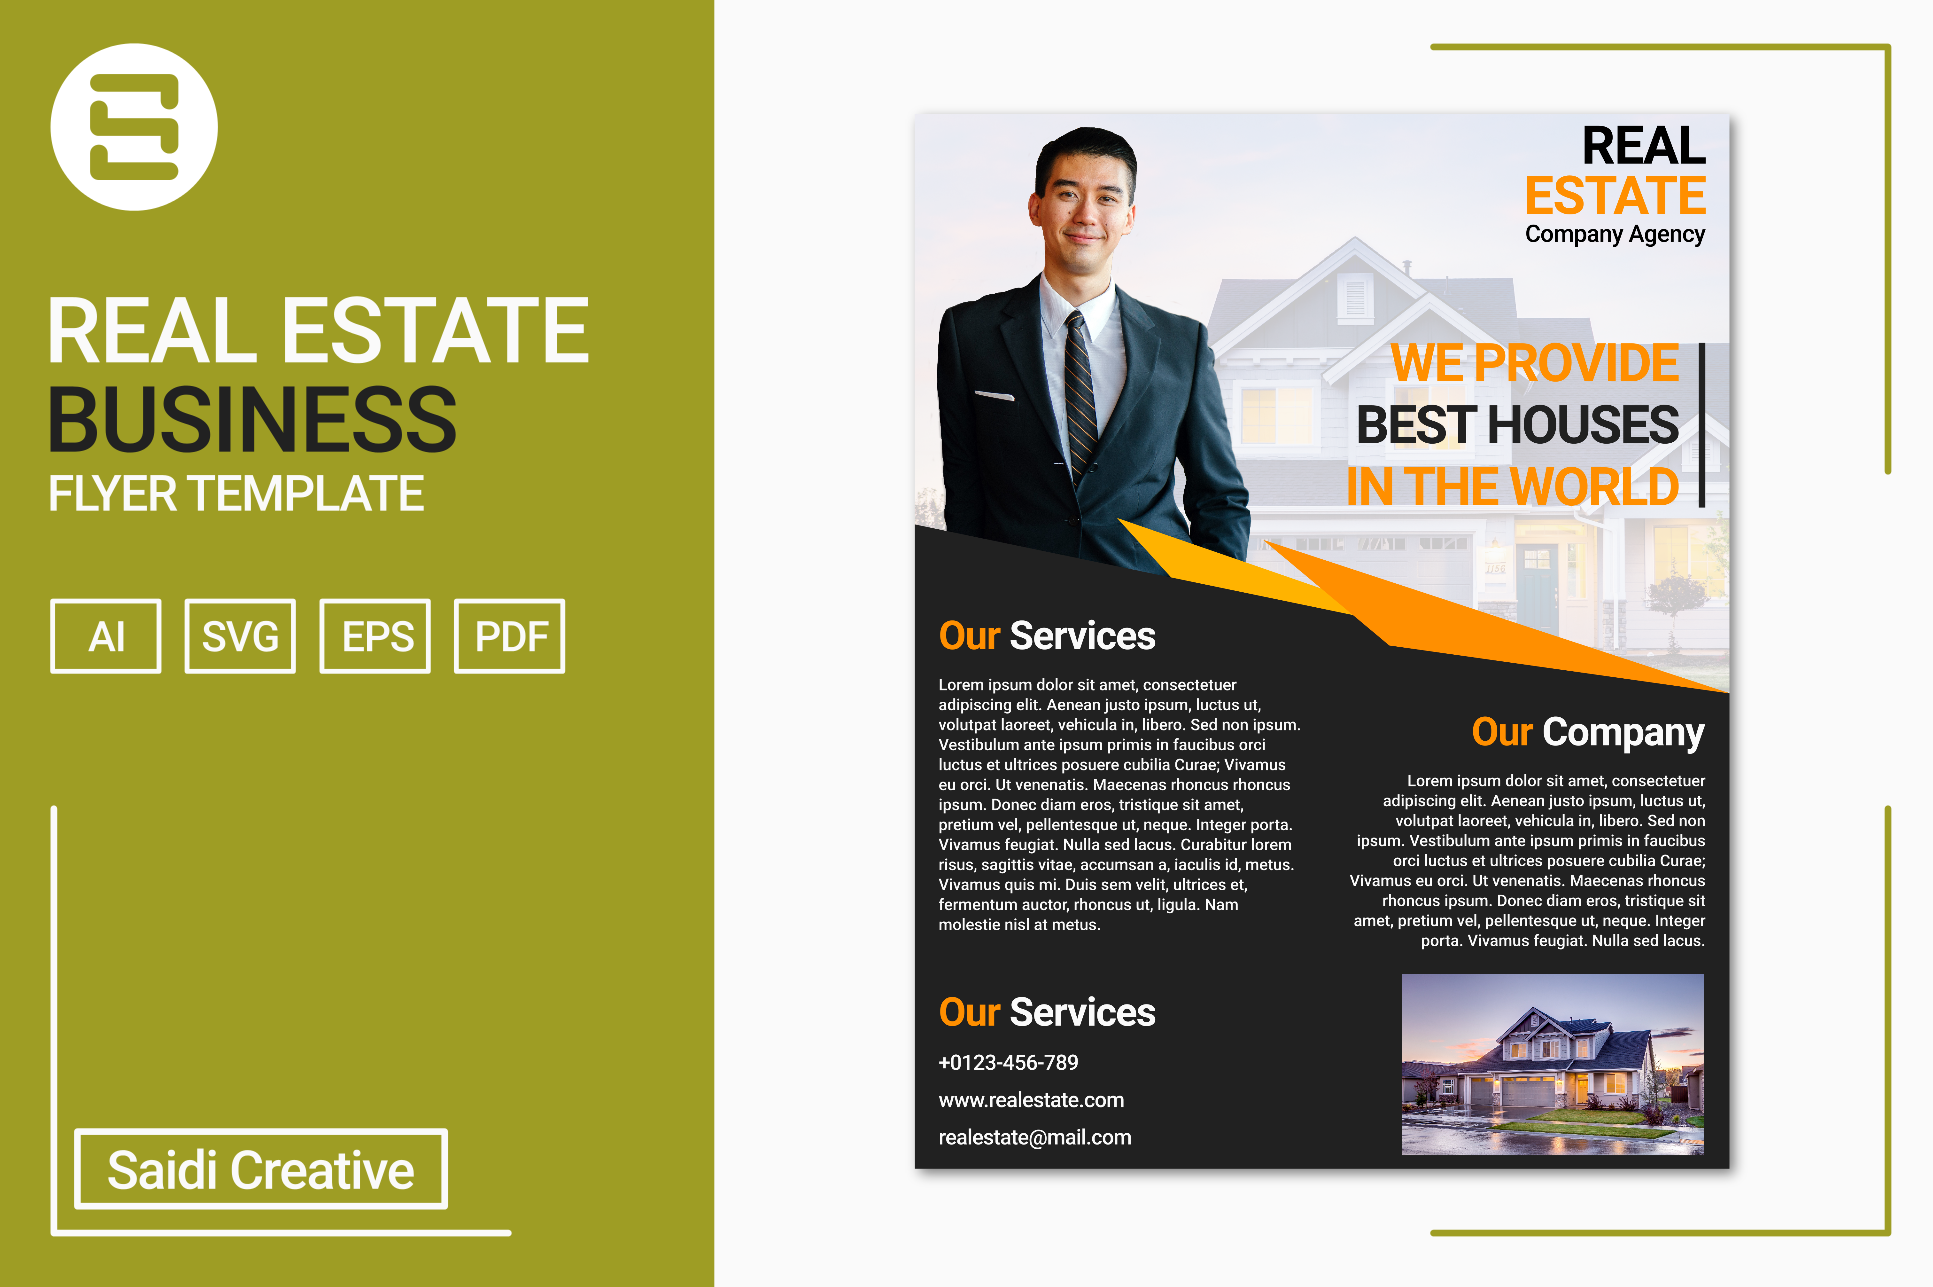 Real estate business flyer template des design bundles real estate business flyer template design us flyer size example image 1 wajeb Image collections